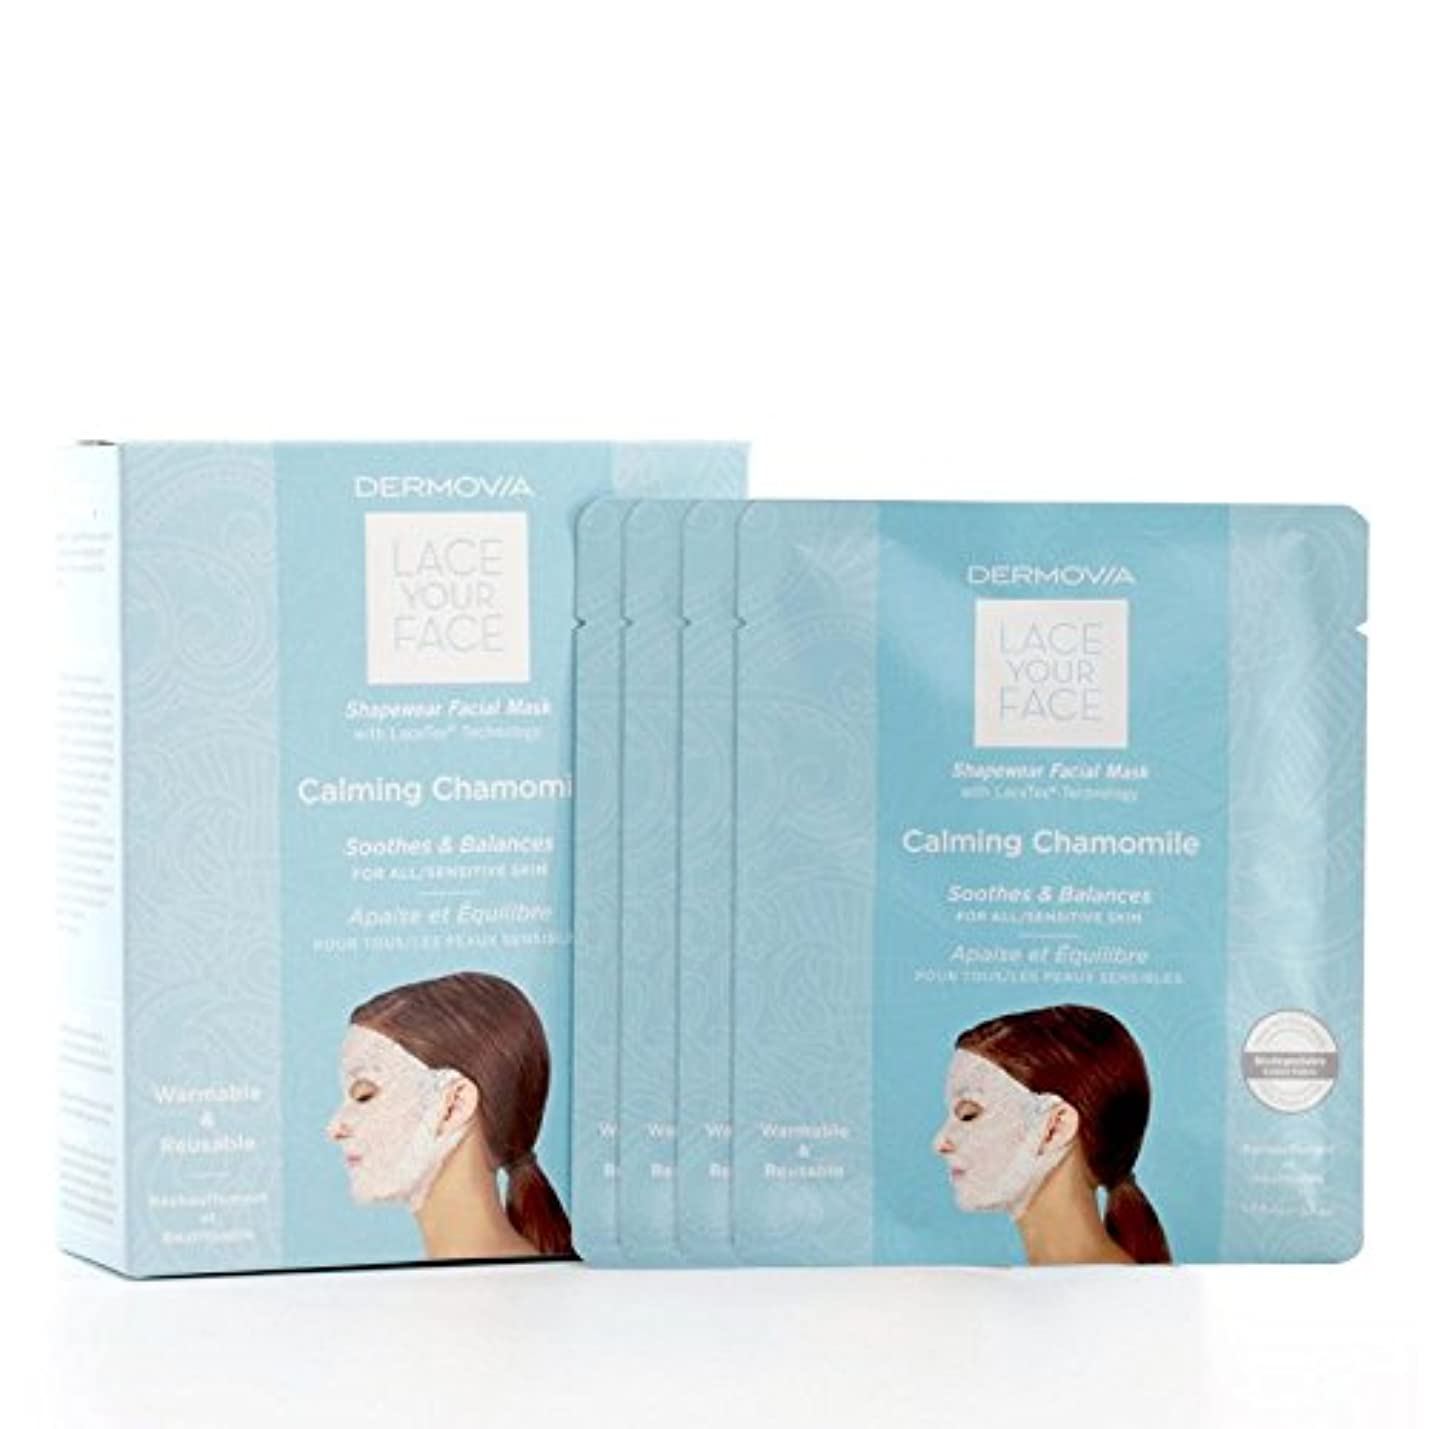 Dermovia Lace Your Face Compression Facial Mask Calming Chamomile (Pack of 6) - は、あなたの顔の圧縮フェイシャルマスク心を落ち着かせるカモミール...